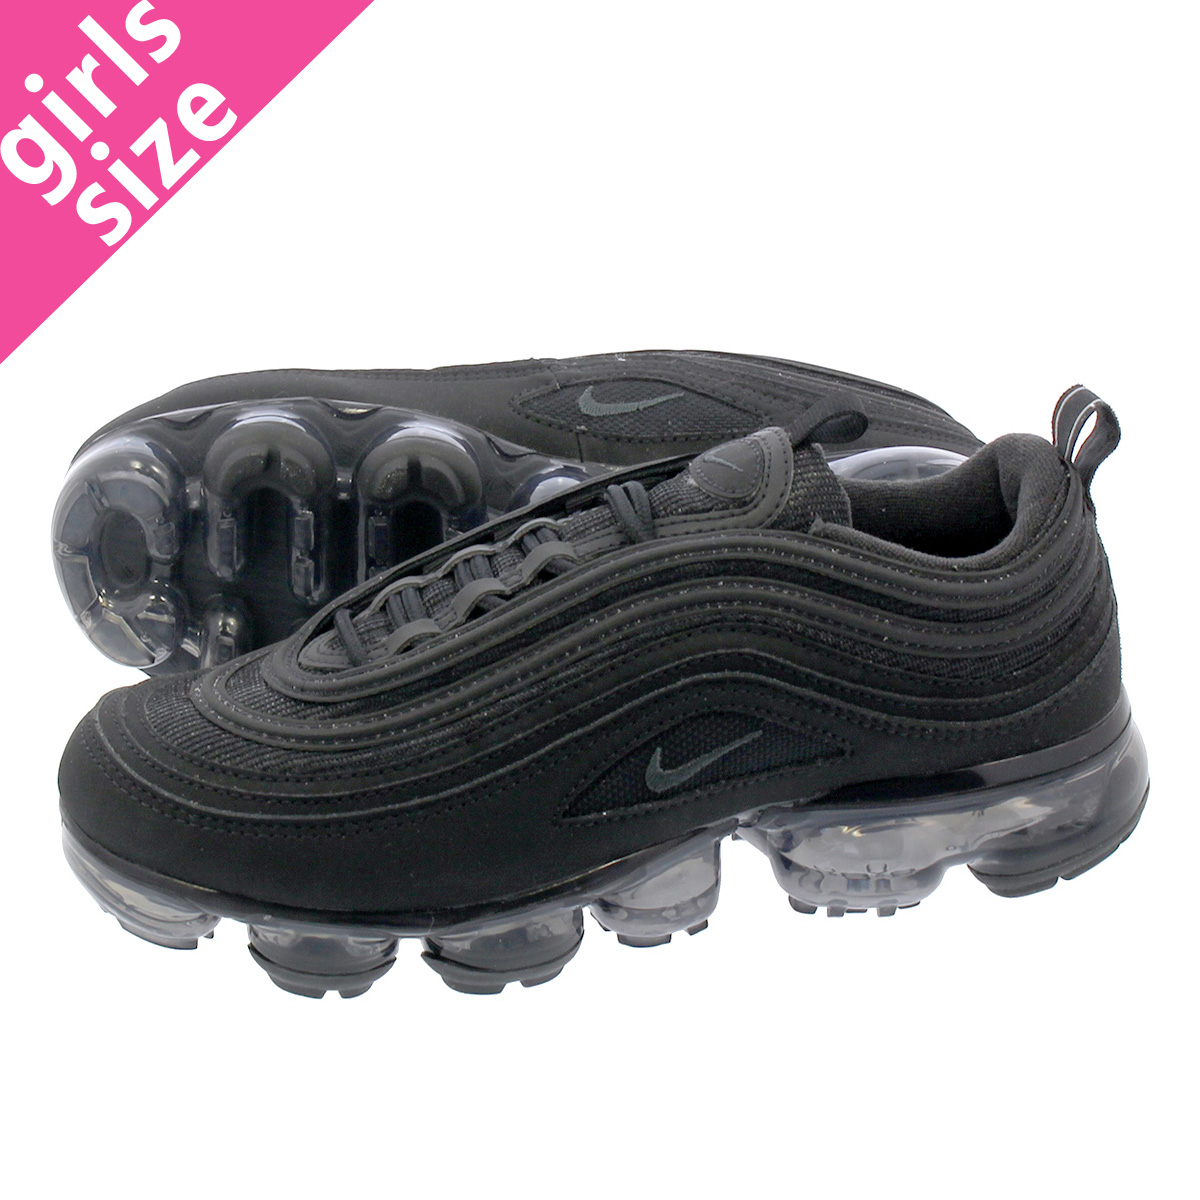 finest selection 9d0d4 4f6dc NIKE AIR VAPORMAX 97 GS Nike air vapor max 97 GS BLACK/BLACK aq2657-001